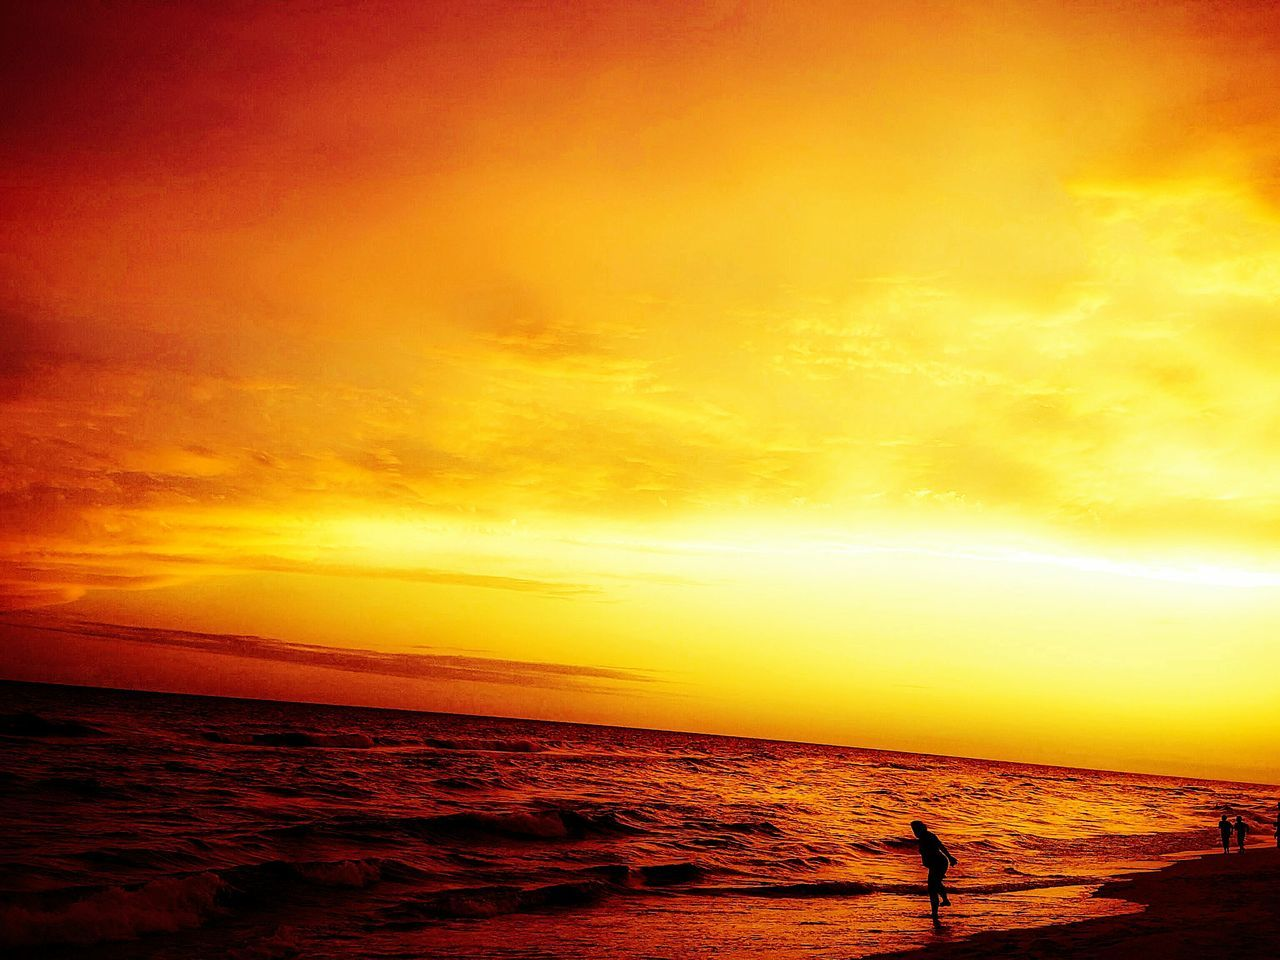 sunset, sea, beauty in nature, scenics, orange color, water, tranquil scene, tranquility, horizon over water, nature, sky, sun, idyllic, silhouette, outdoors, cloud - sky, no people, yellow, beach, vacations